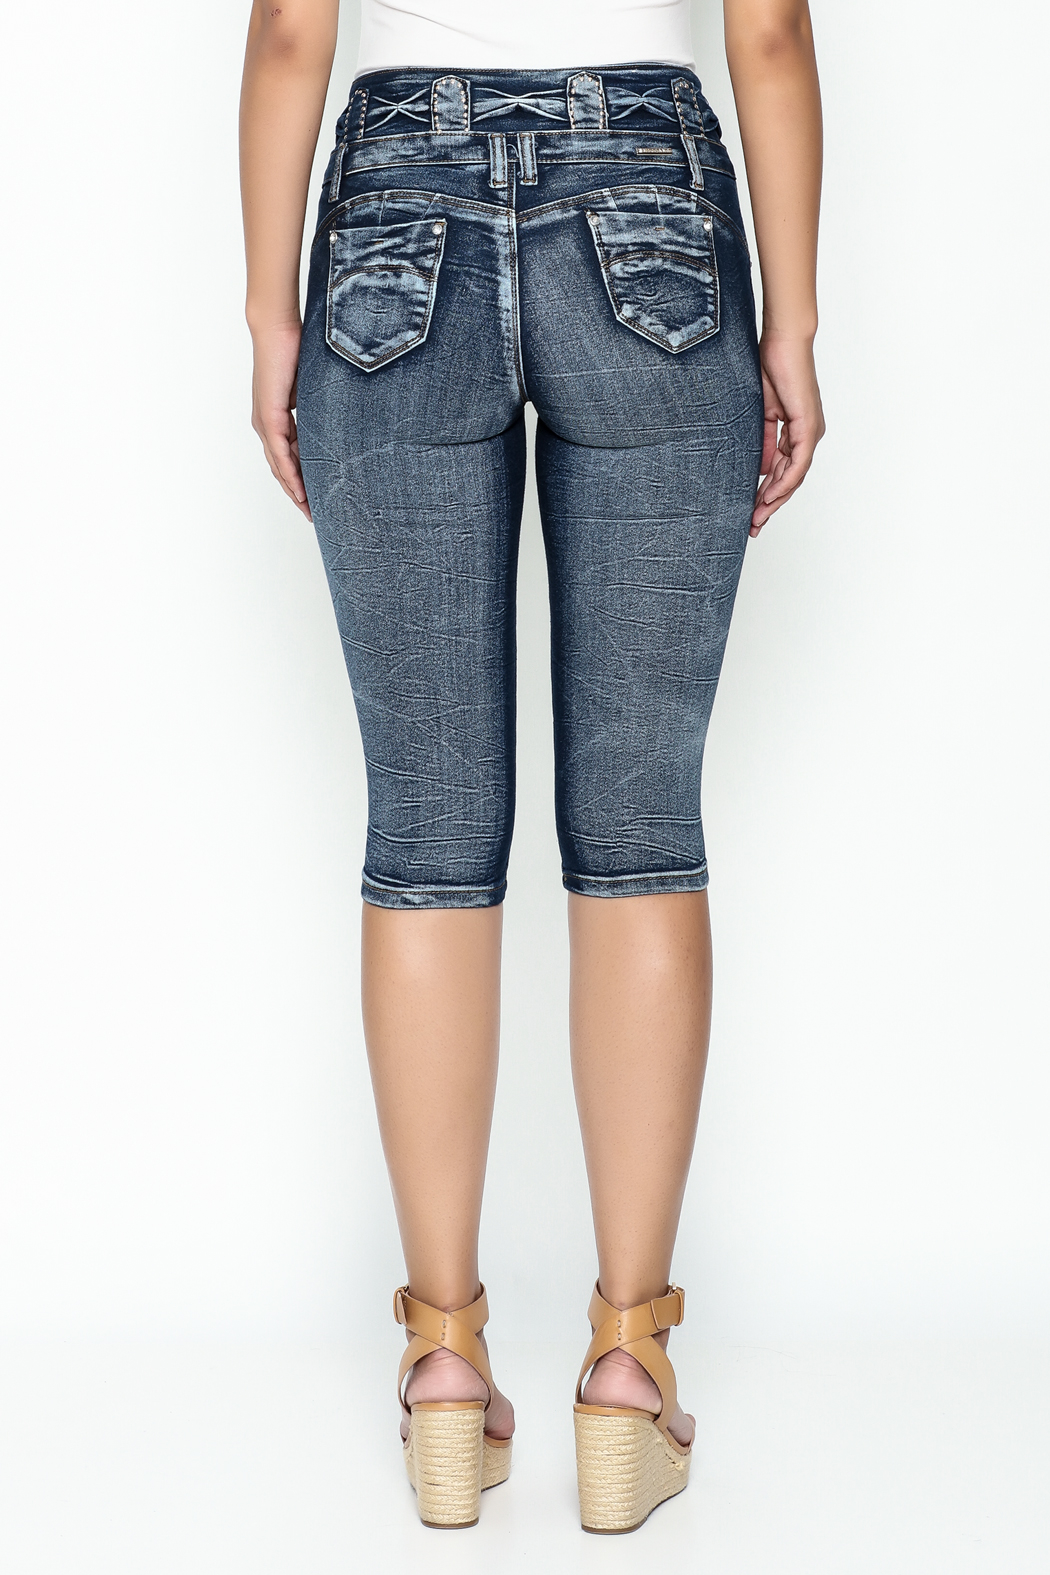 MiH Jeans High Waisted Denim Capris - Back Cropped Image